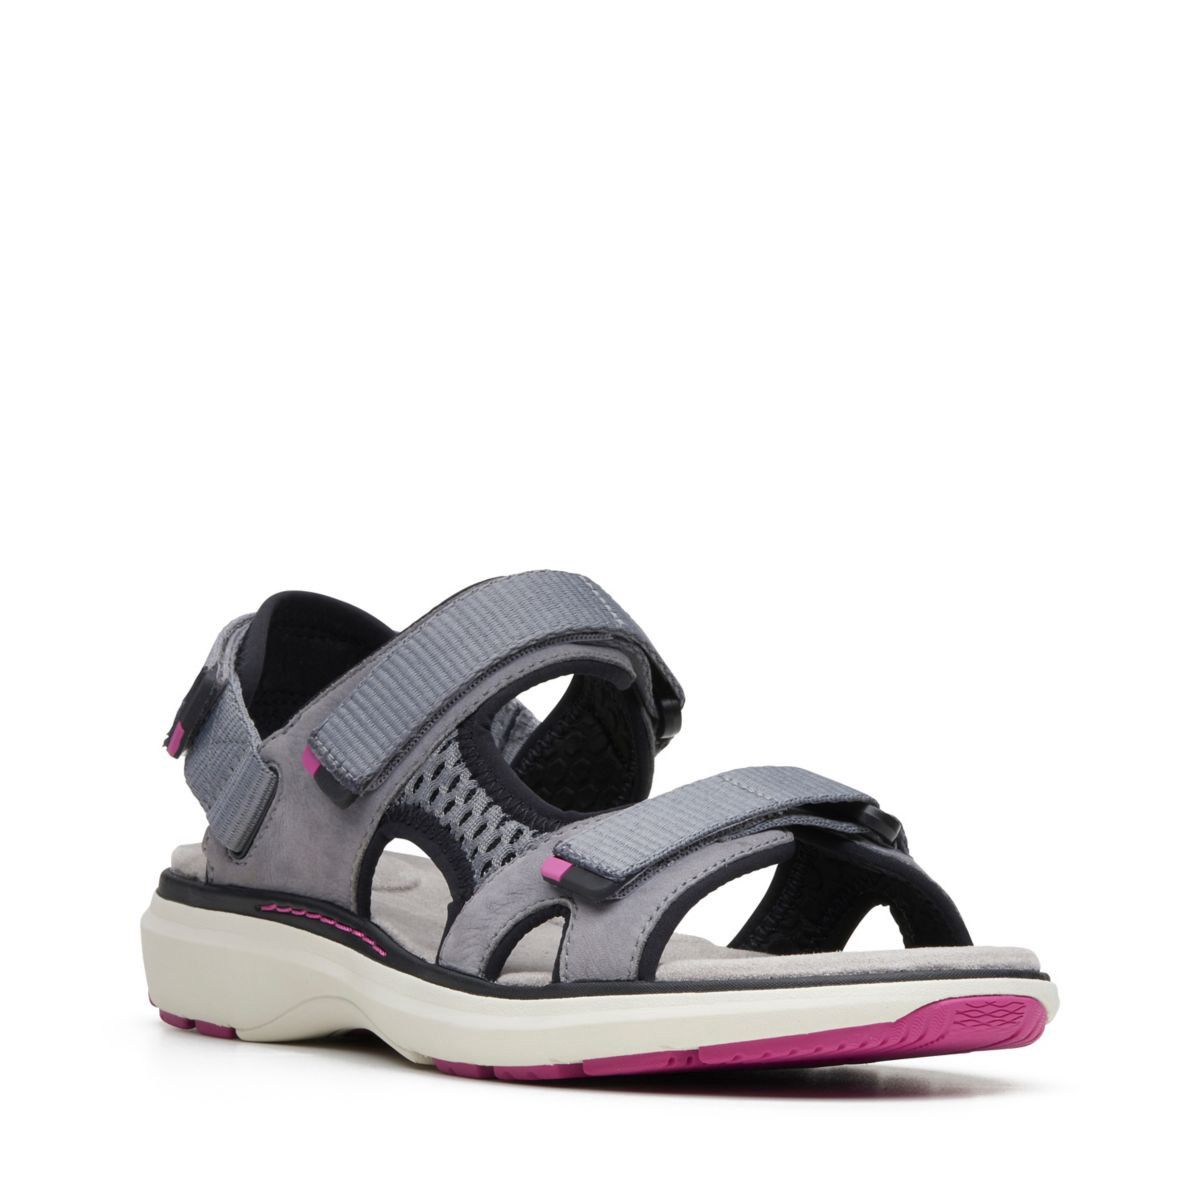 6f3c6e5055b2 Clarks Un Roam Step - Womens Sport Sandals Grey Nubuck 9.5 Gray ...